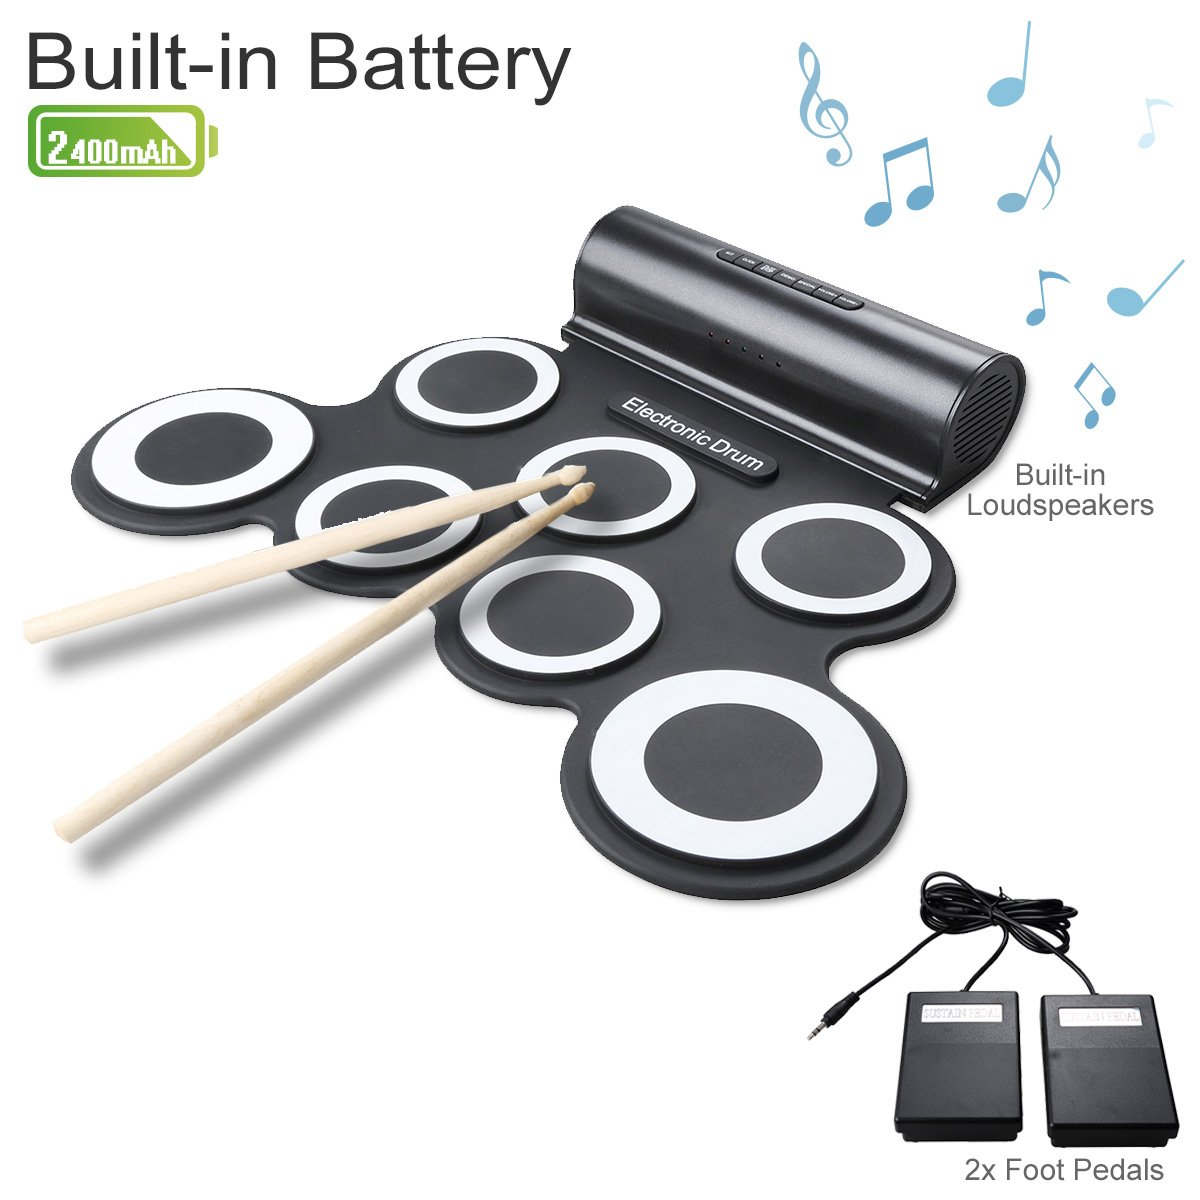 Rechargeable Electronic Roll-Up Drum Kit, Foldable Drum Set Built in Speaker With DrumSticks, Foot Pedals CoastaCloud 7 Drum Pads With Headphone Jack For Practice Starters Kids MU-D300006